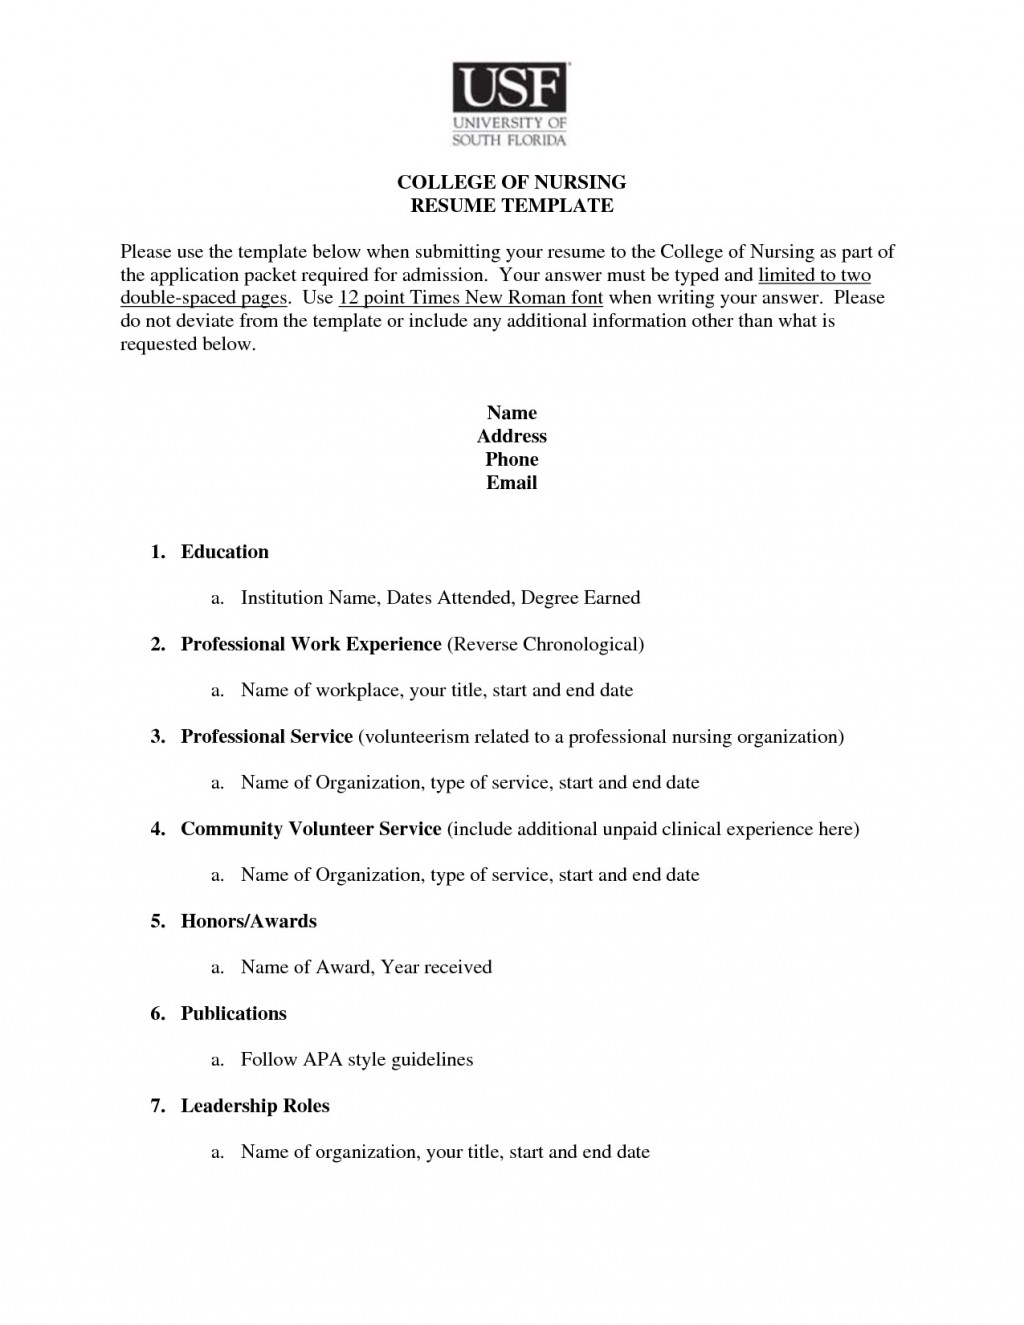 006 Awful College Admission Resume Template Design  Microsoft Word Application DownloadLarge